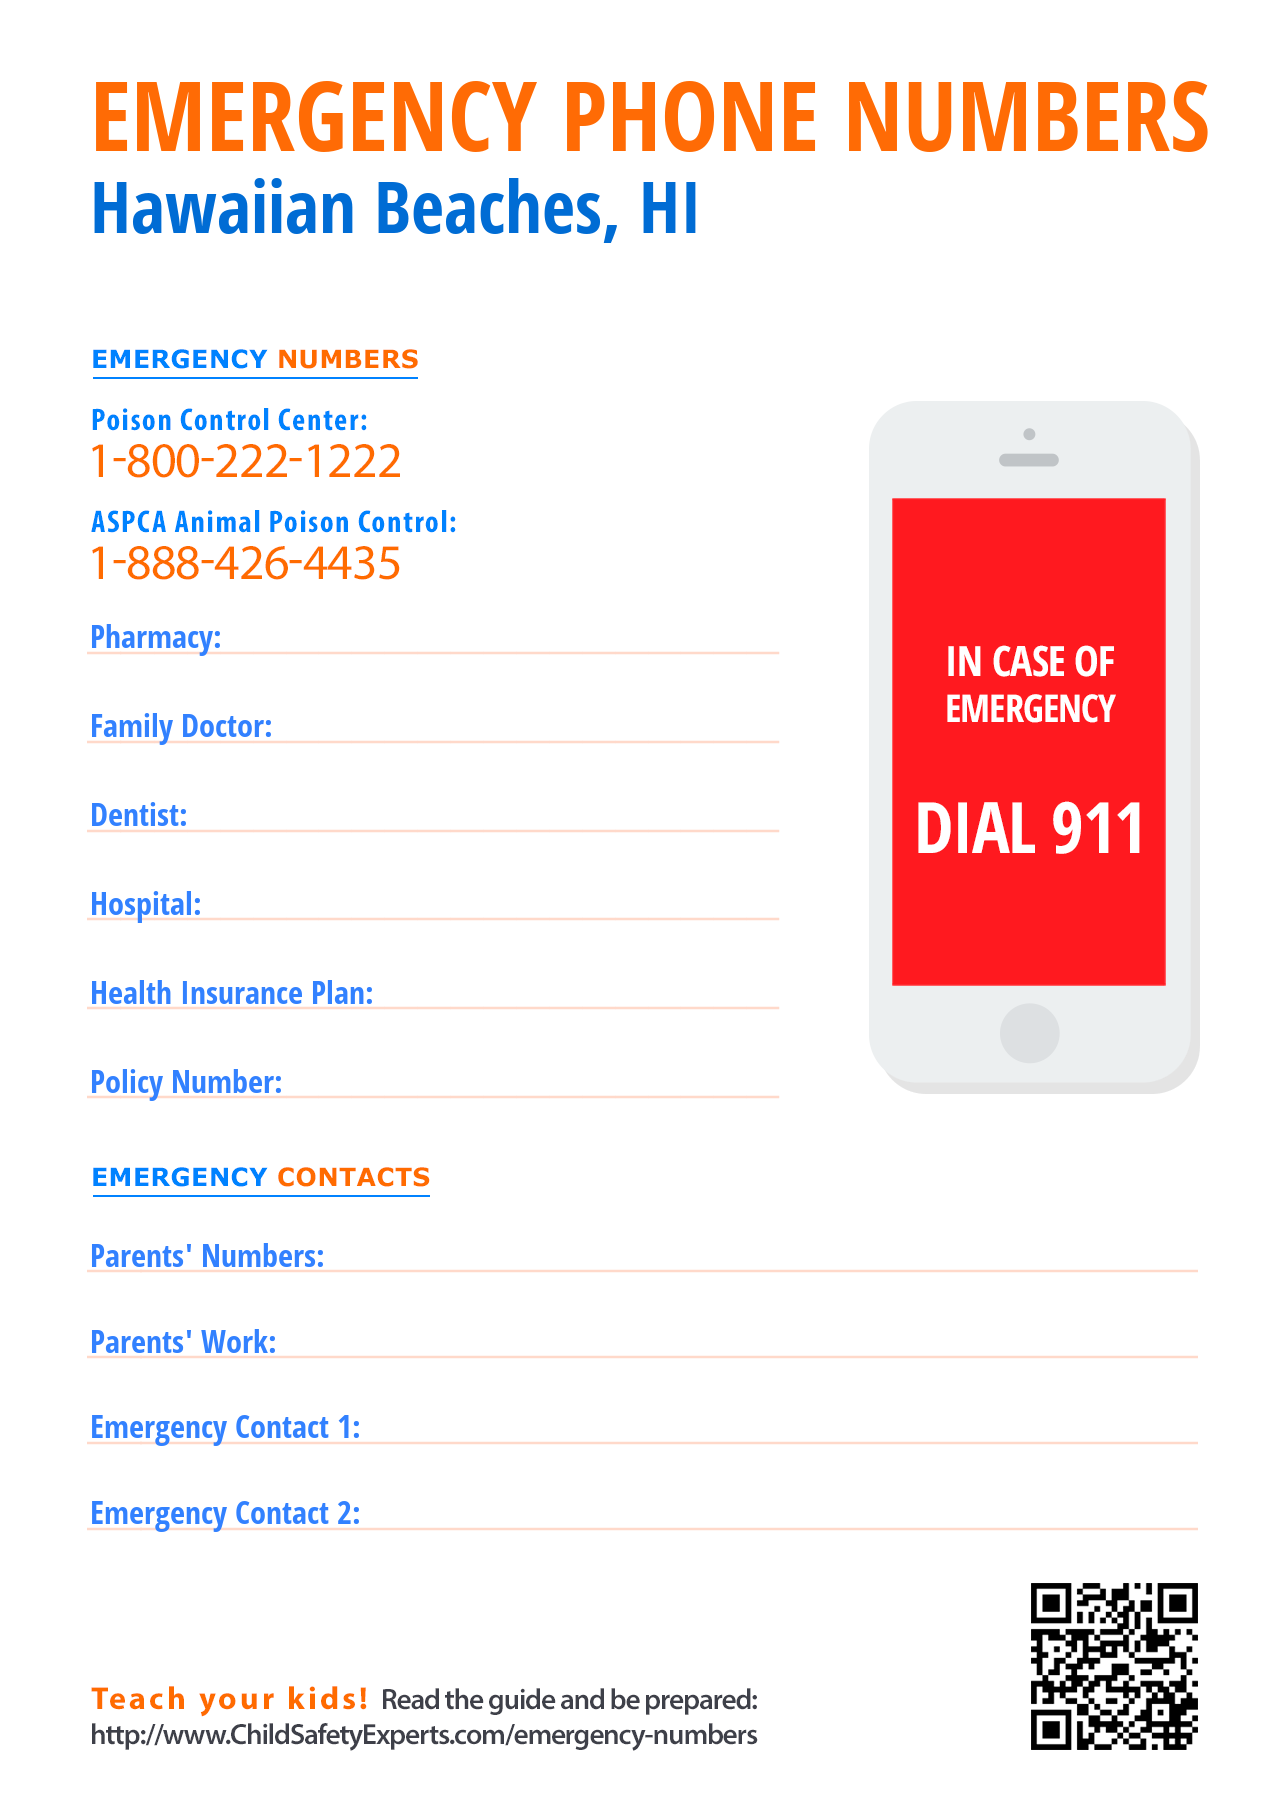 Important emergency phone numbers in Hawaiian Beaches, Hawaii